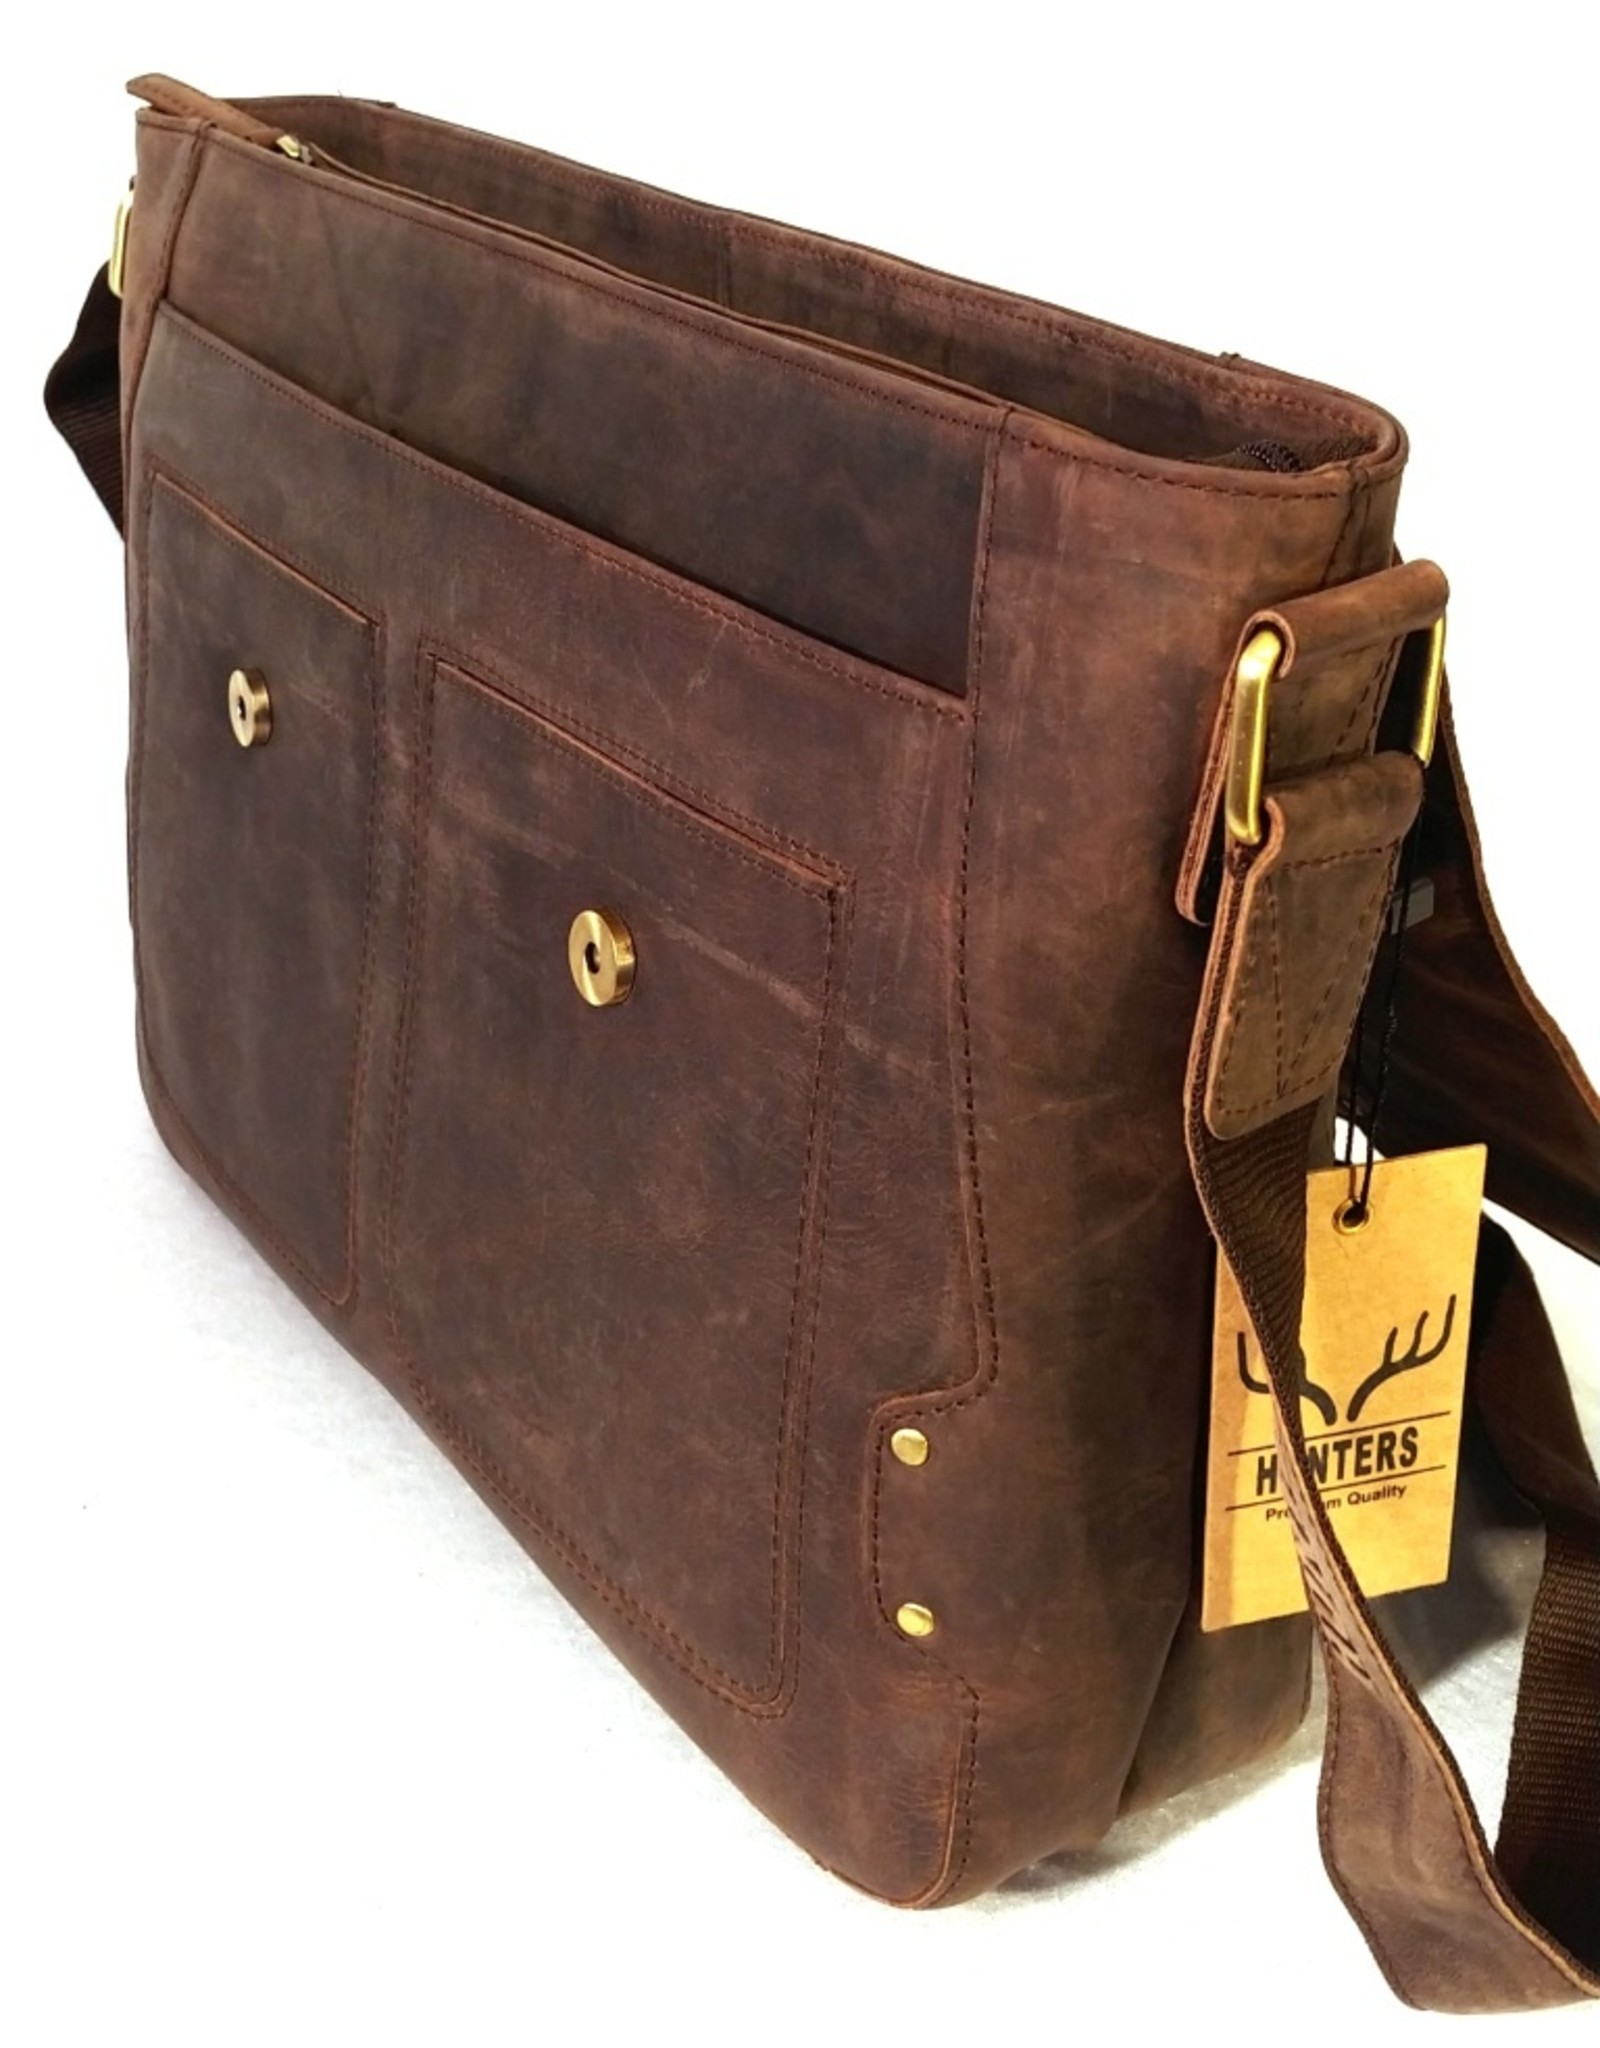 Hunters Leather bags and Leather laptop bags - Hunters Leather Laptop bag (Buffalo leather)